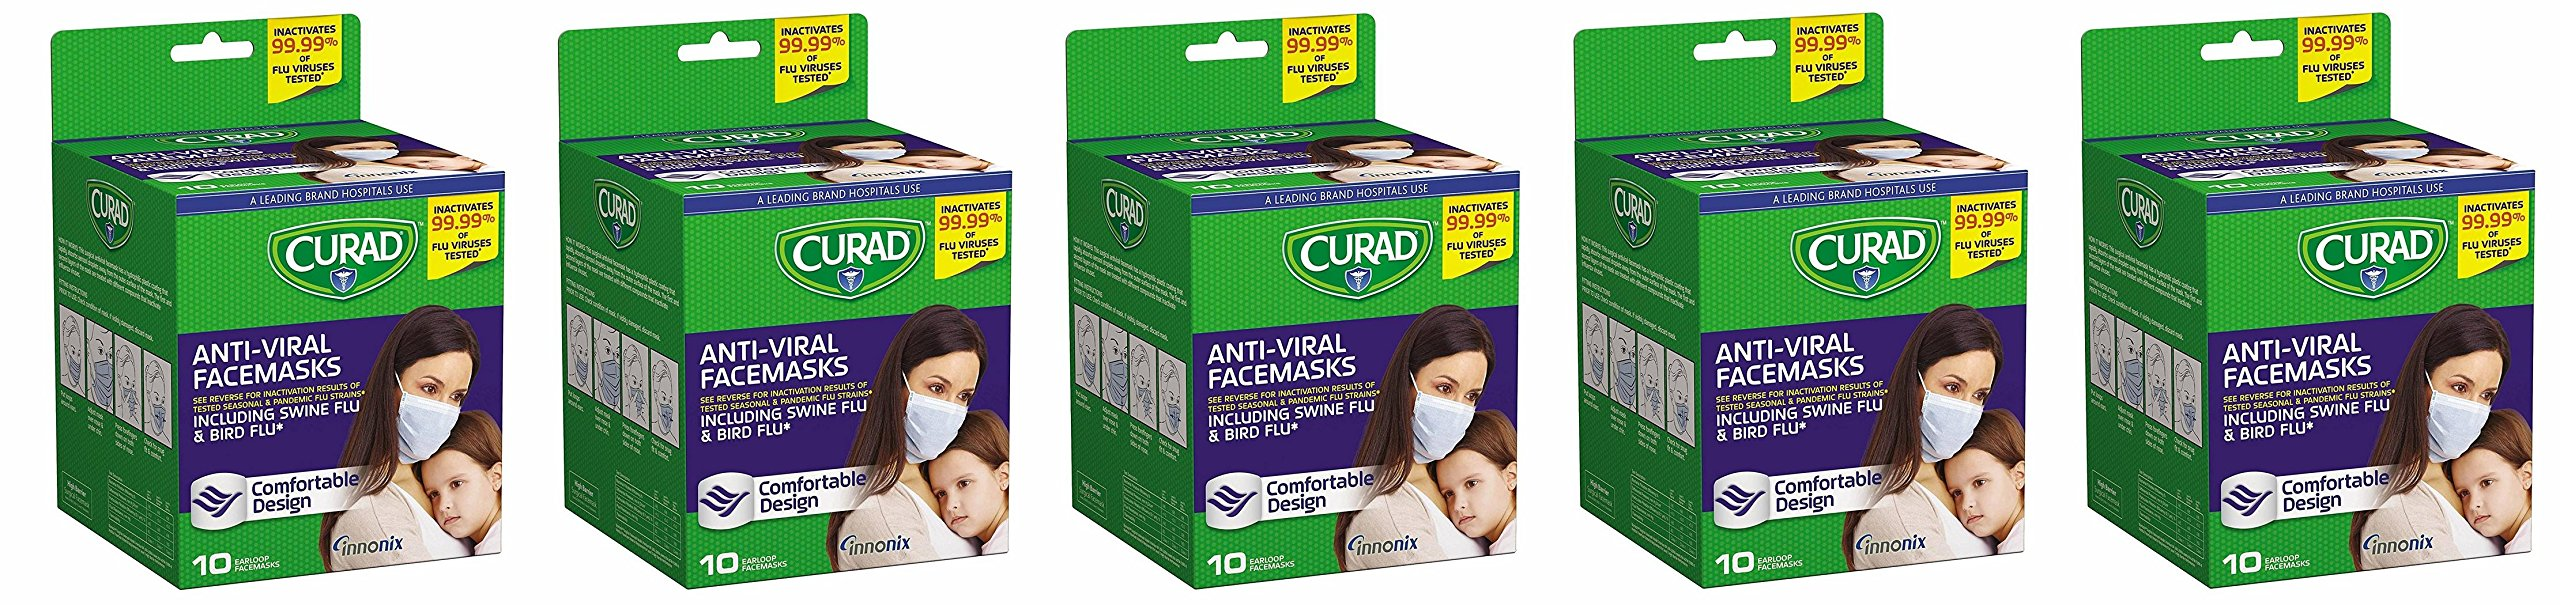 Curad Antiviral XpwKgy Face Mask, 10 Count (Pack of 5)